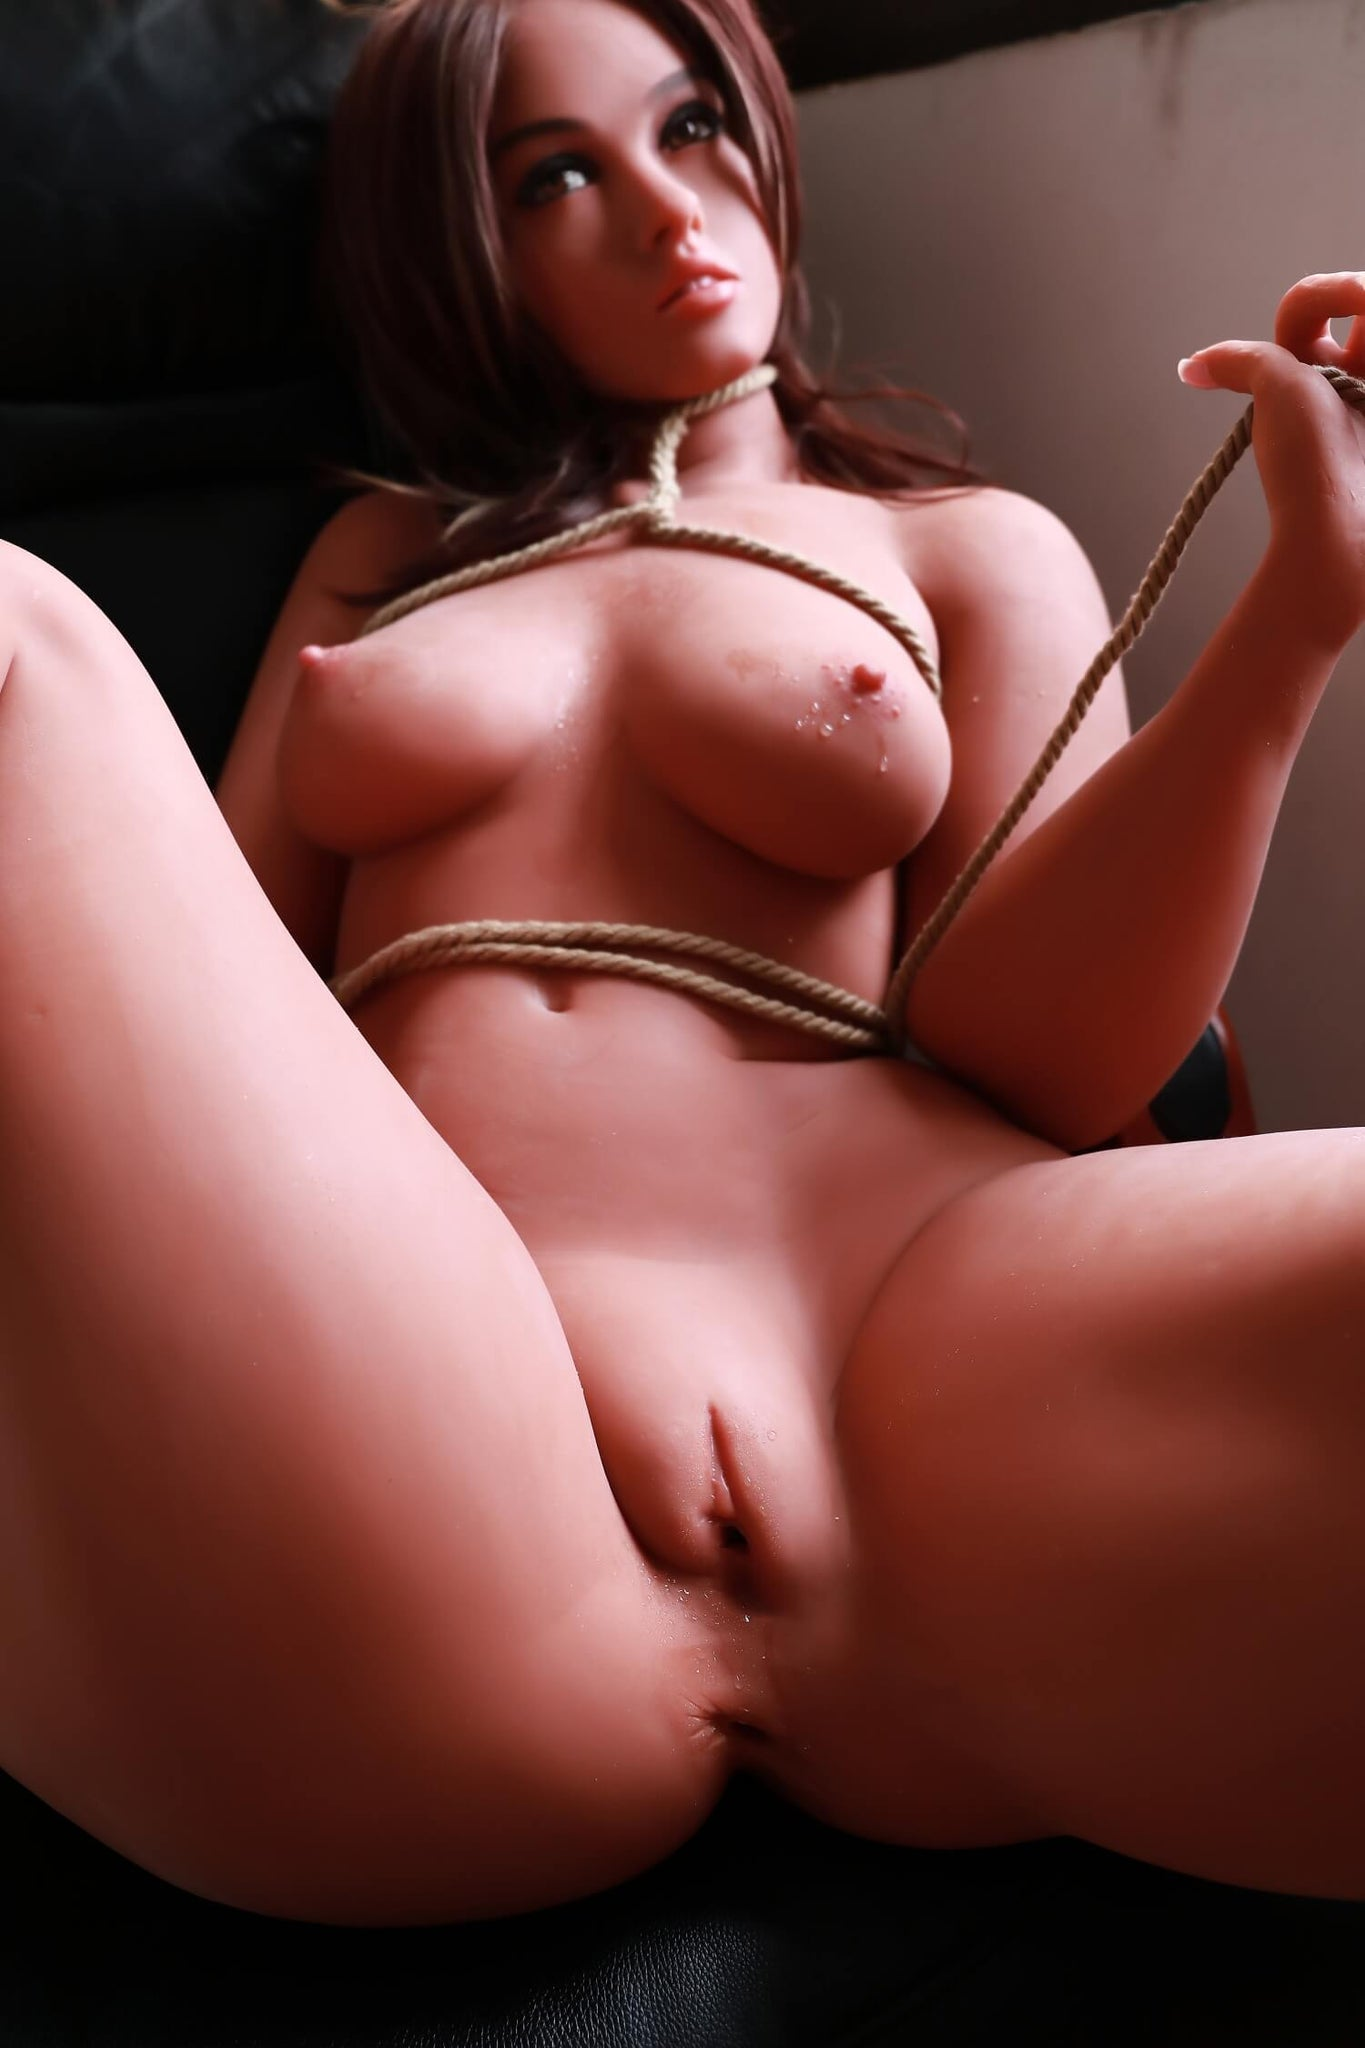 Eartha Sex Doll - Small Breasts and Big Butt